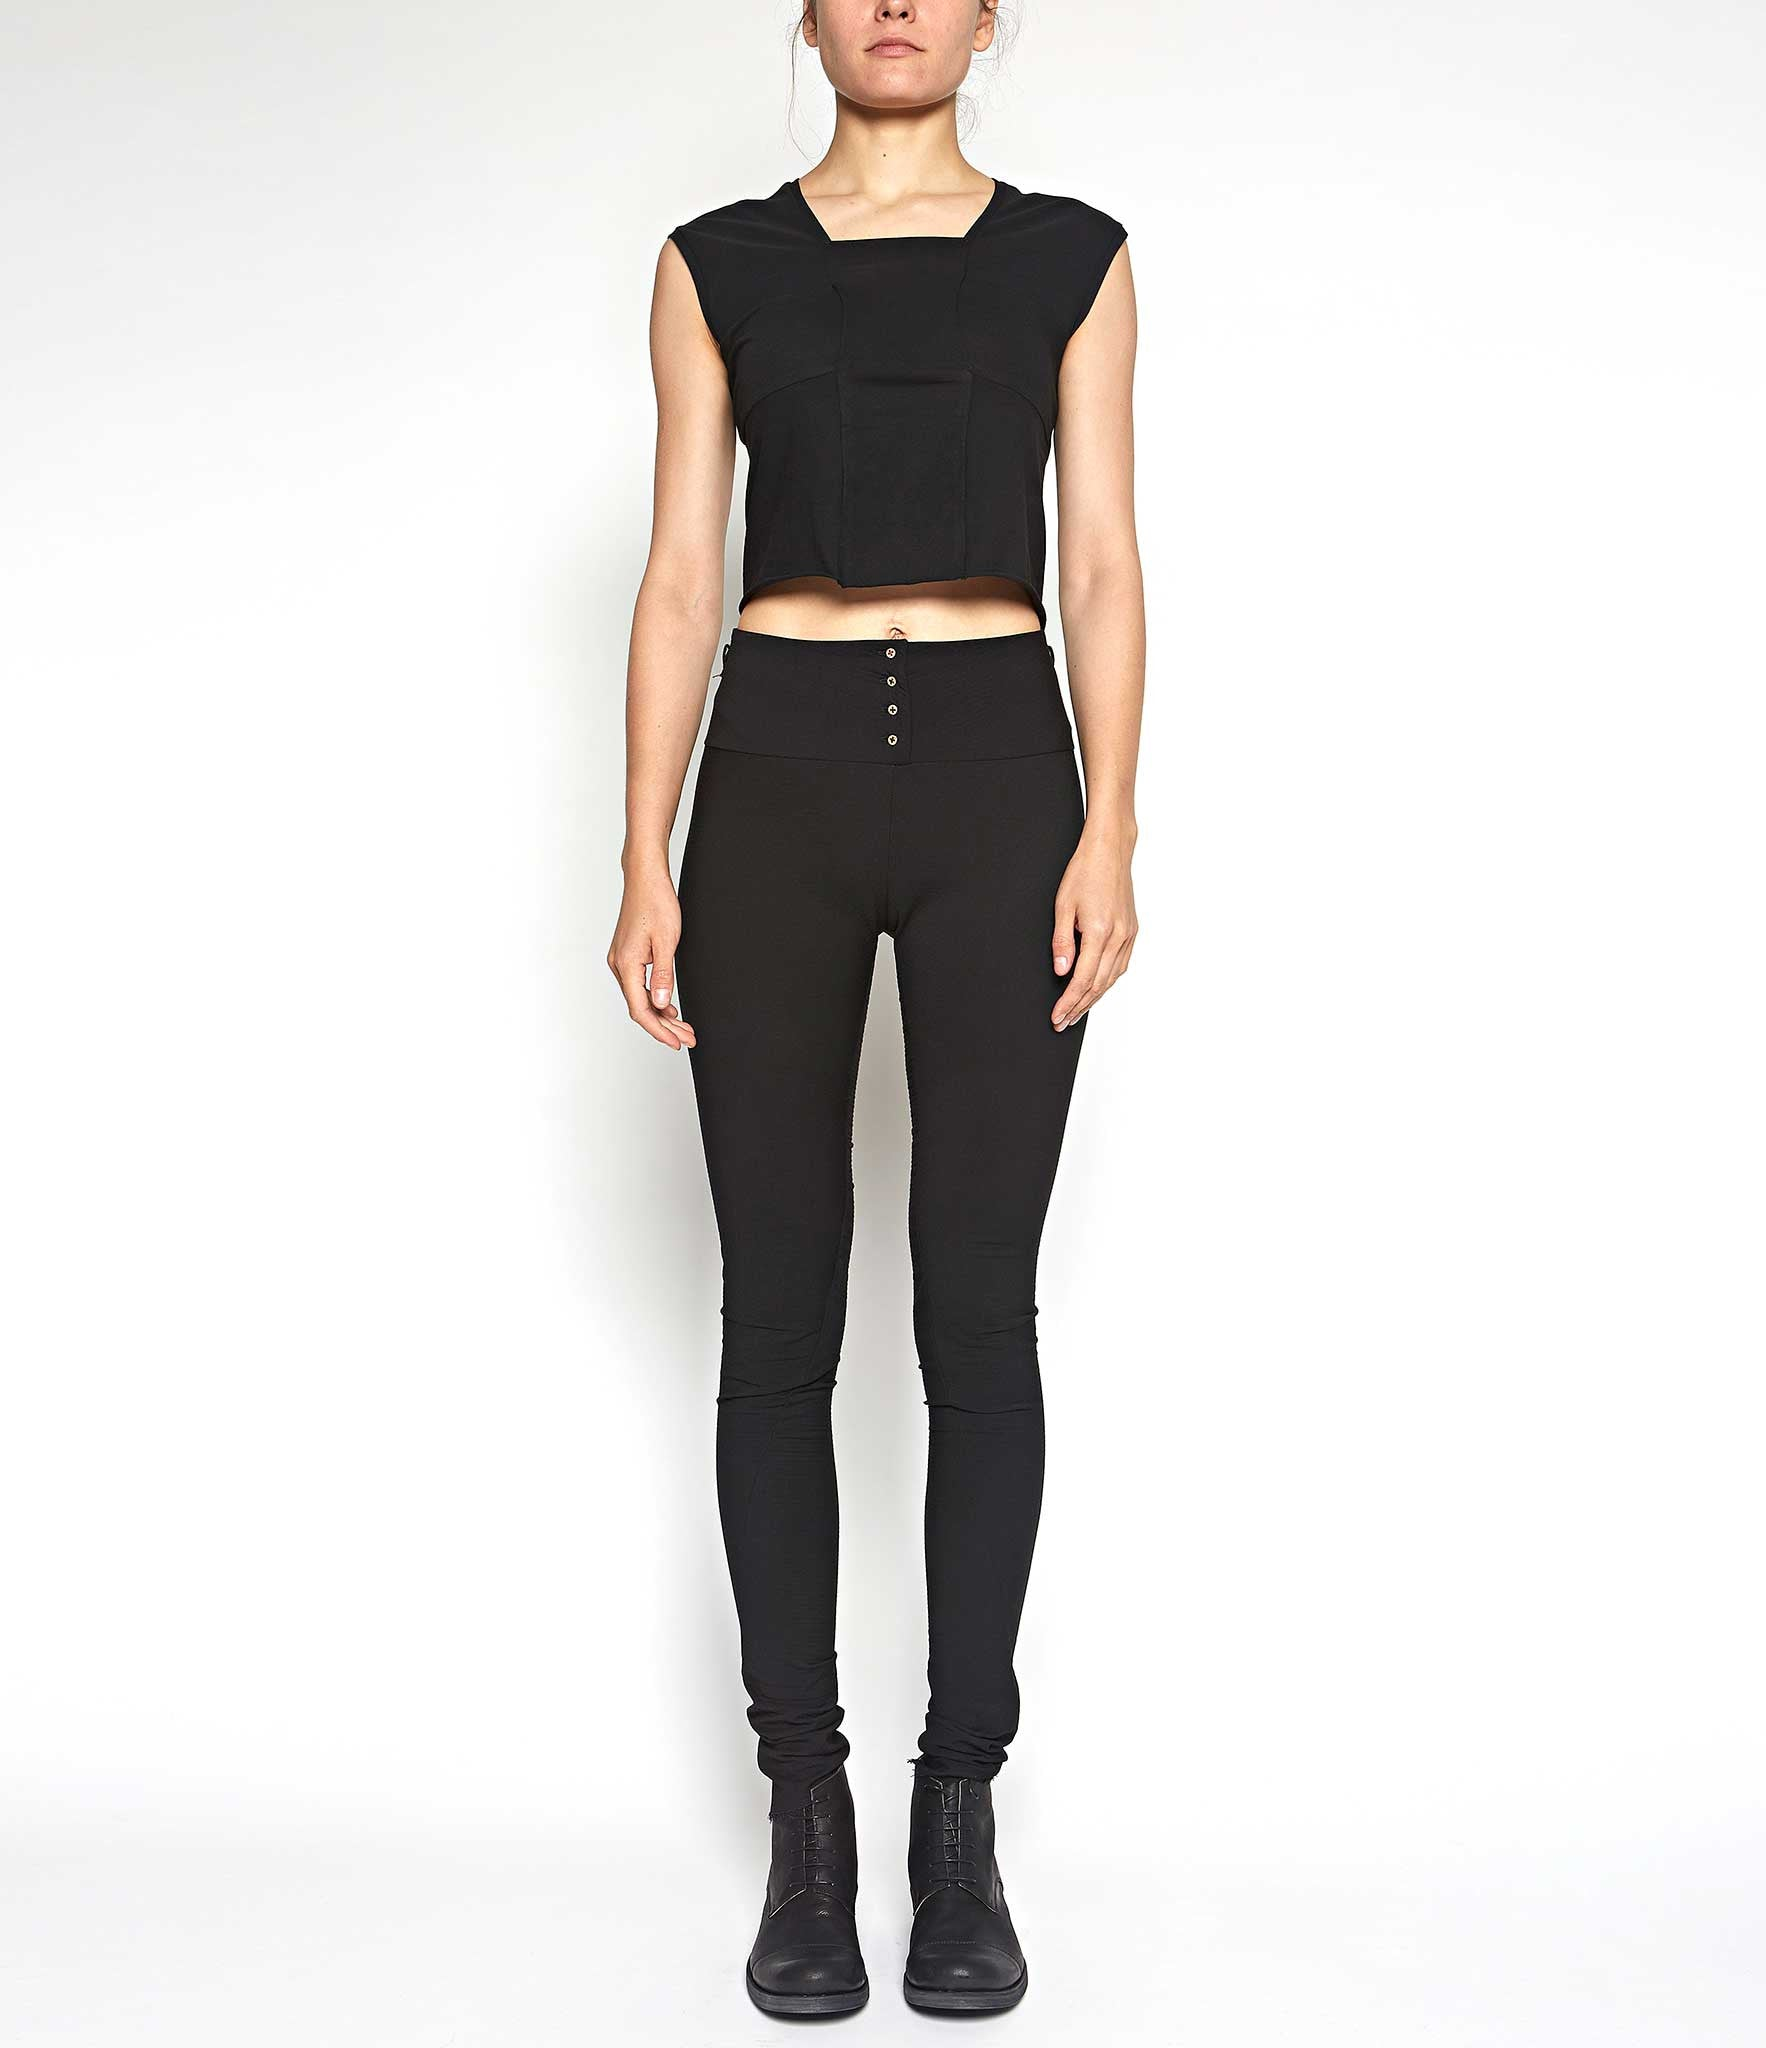 m.a.+ Women's Leggings